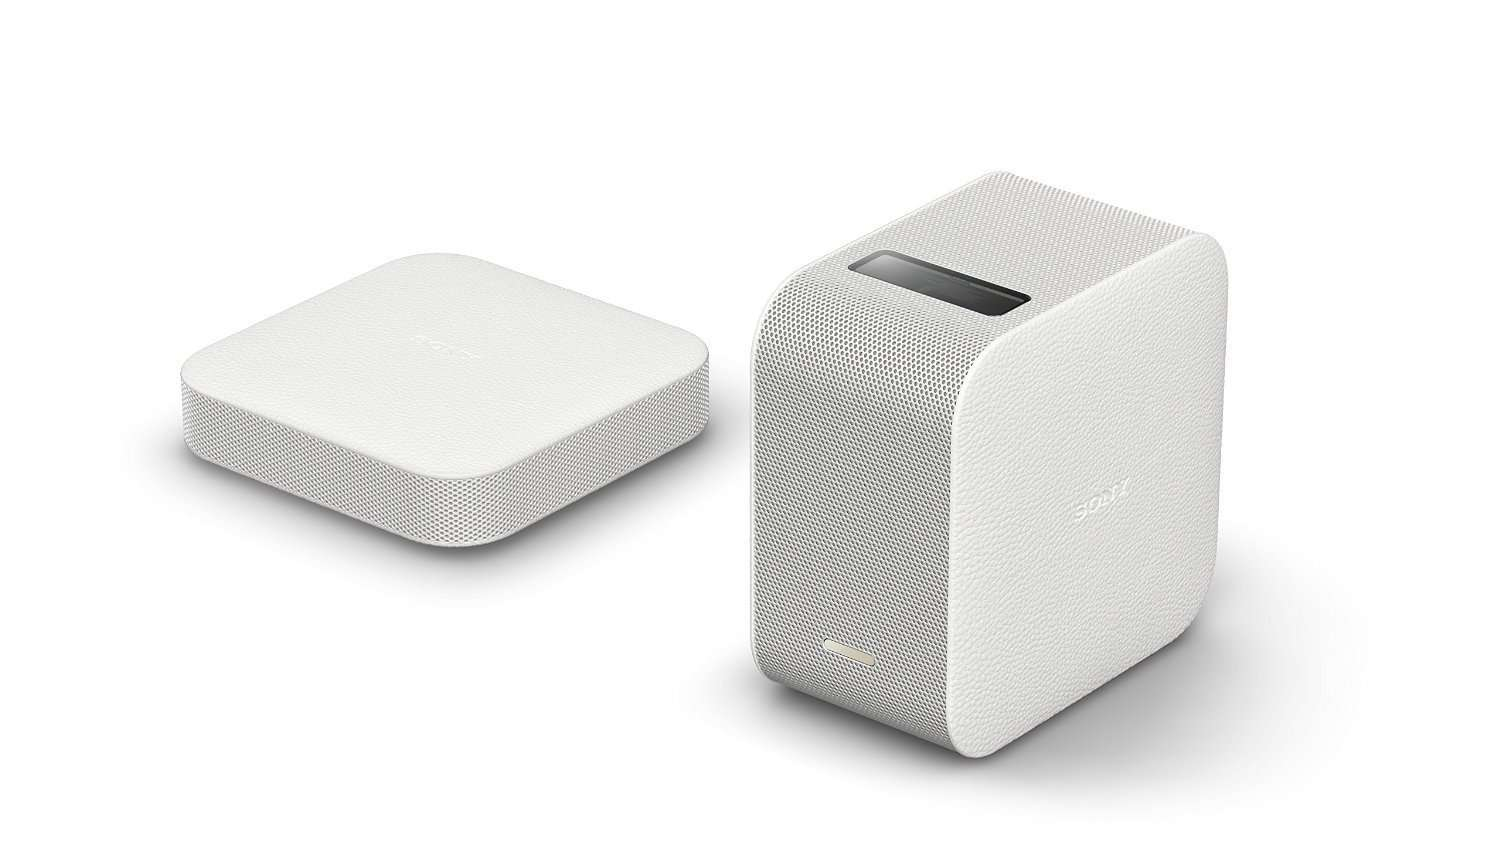 Sony LSPX-P1 Review - Portable Ultra Short Throw Projector